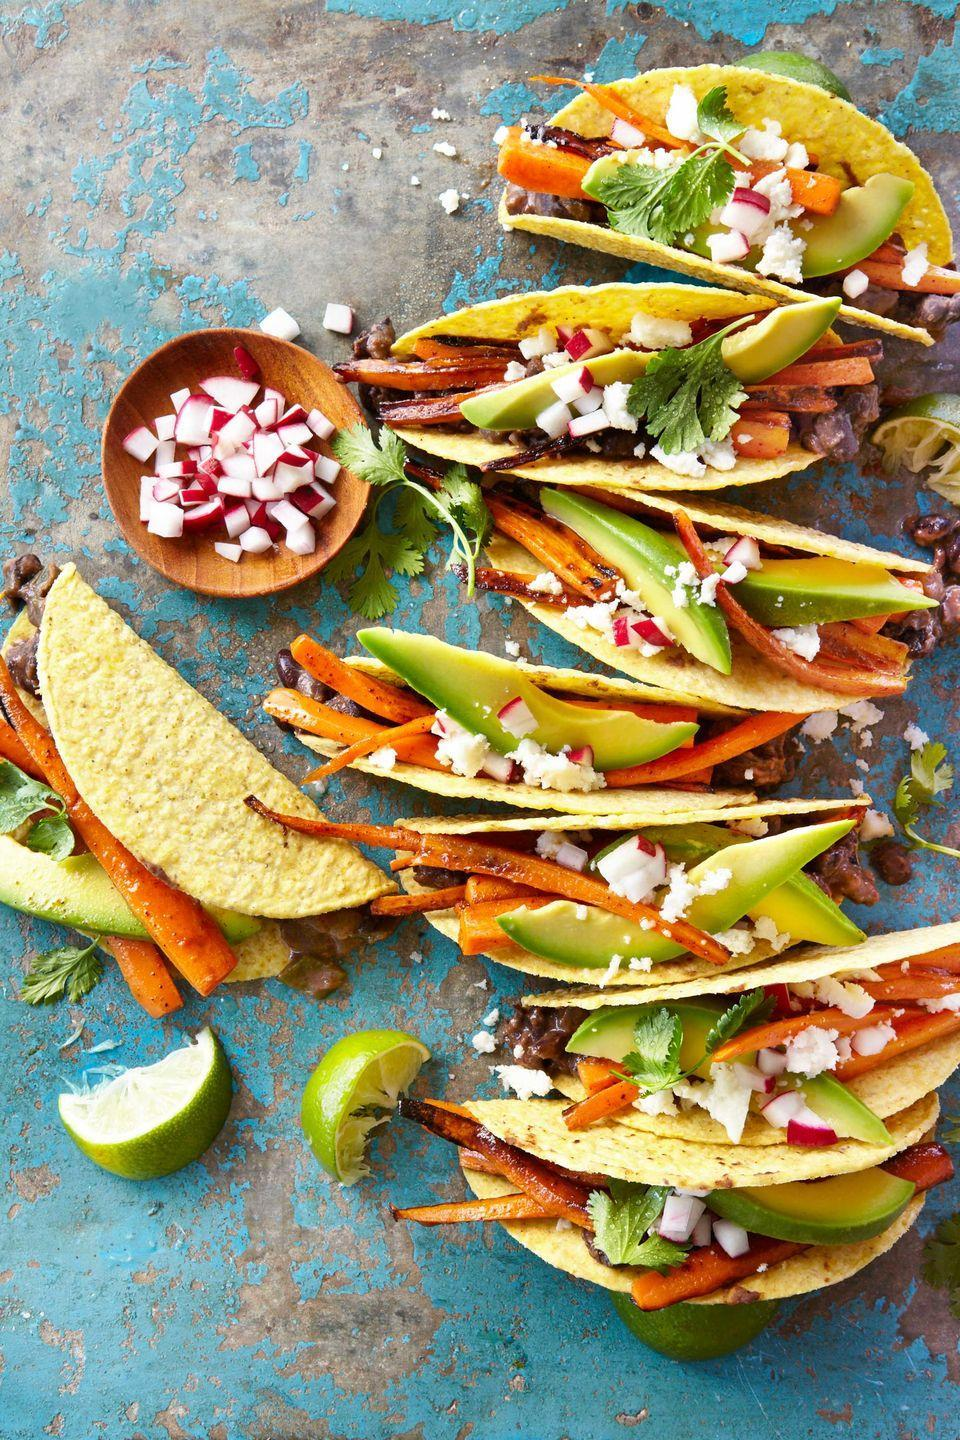 "Try as you might, you simply cannot do better than the crispy yellow corn shells straight from the box. Do not overthink this. <a href=""https://www.countryliving.com/food-drinks/recipes/a39363/carrot-and-black-bean-crispy-tacos-recipe/"" rel=""nofollow noopener"" target=""_blank"" data-ylk=""slk:Get the recipe"" class=""link rapid-noclick-resp""><strong>Get the recipe</strong></a><strong>.</strong><br>"